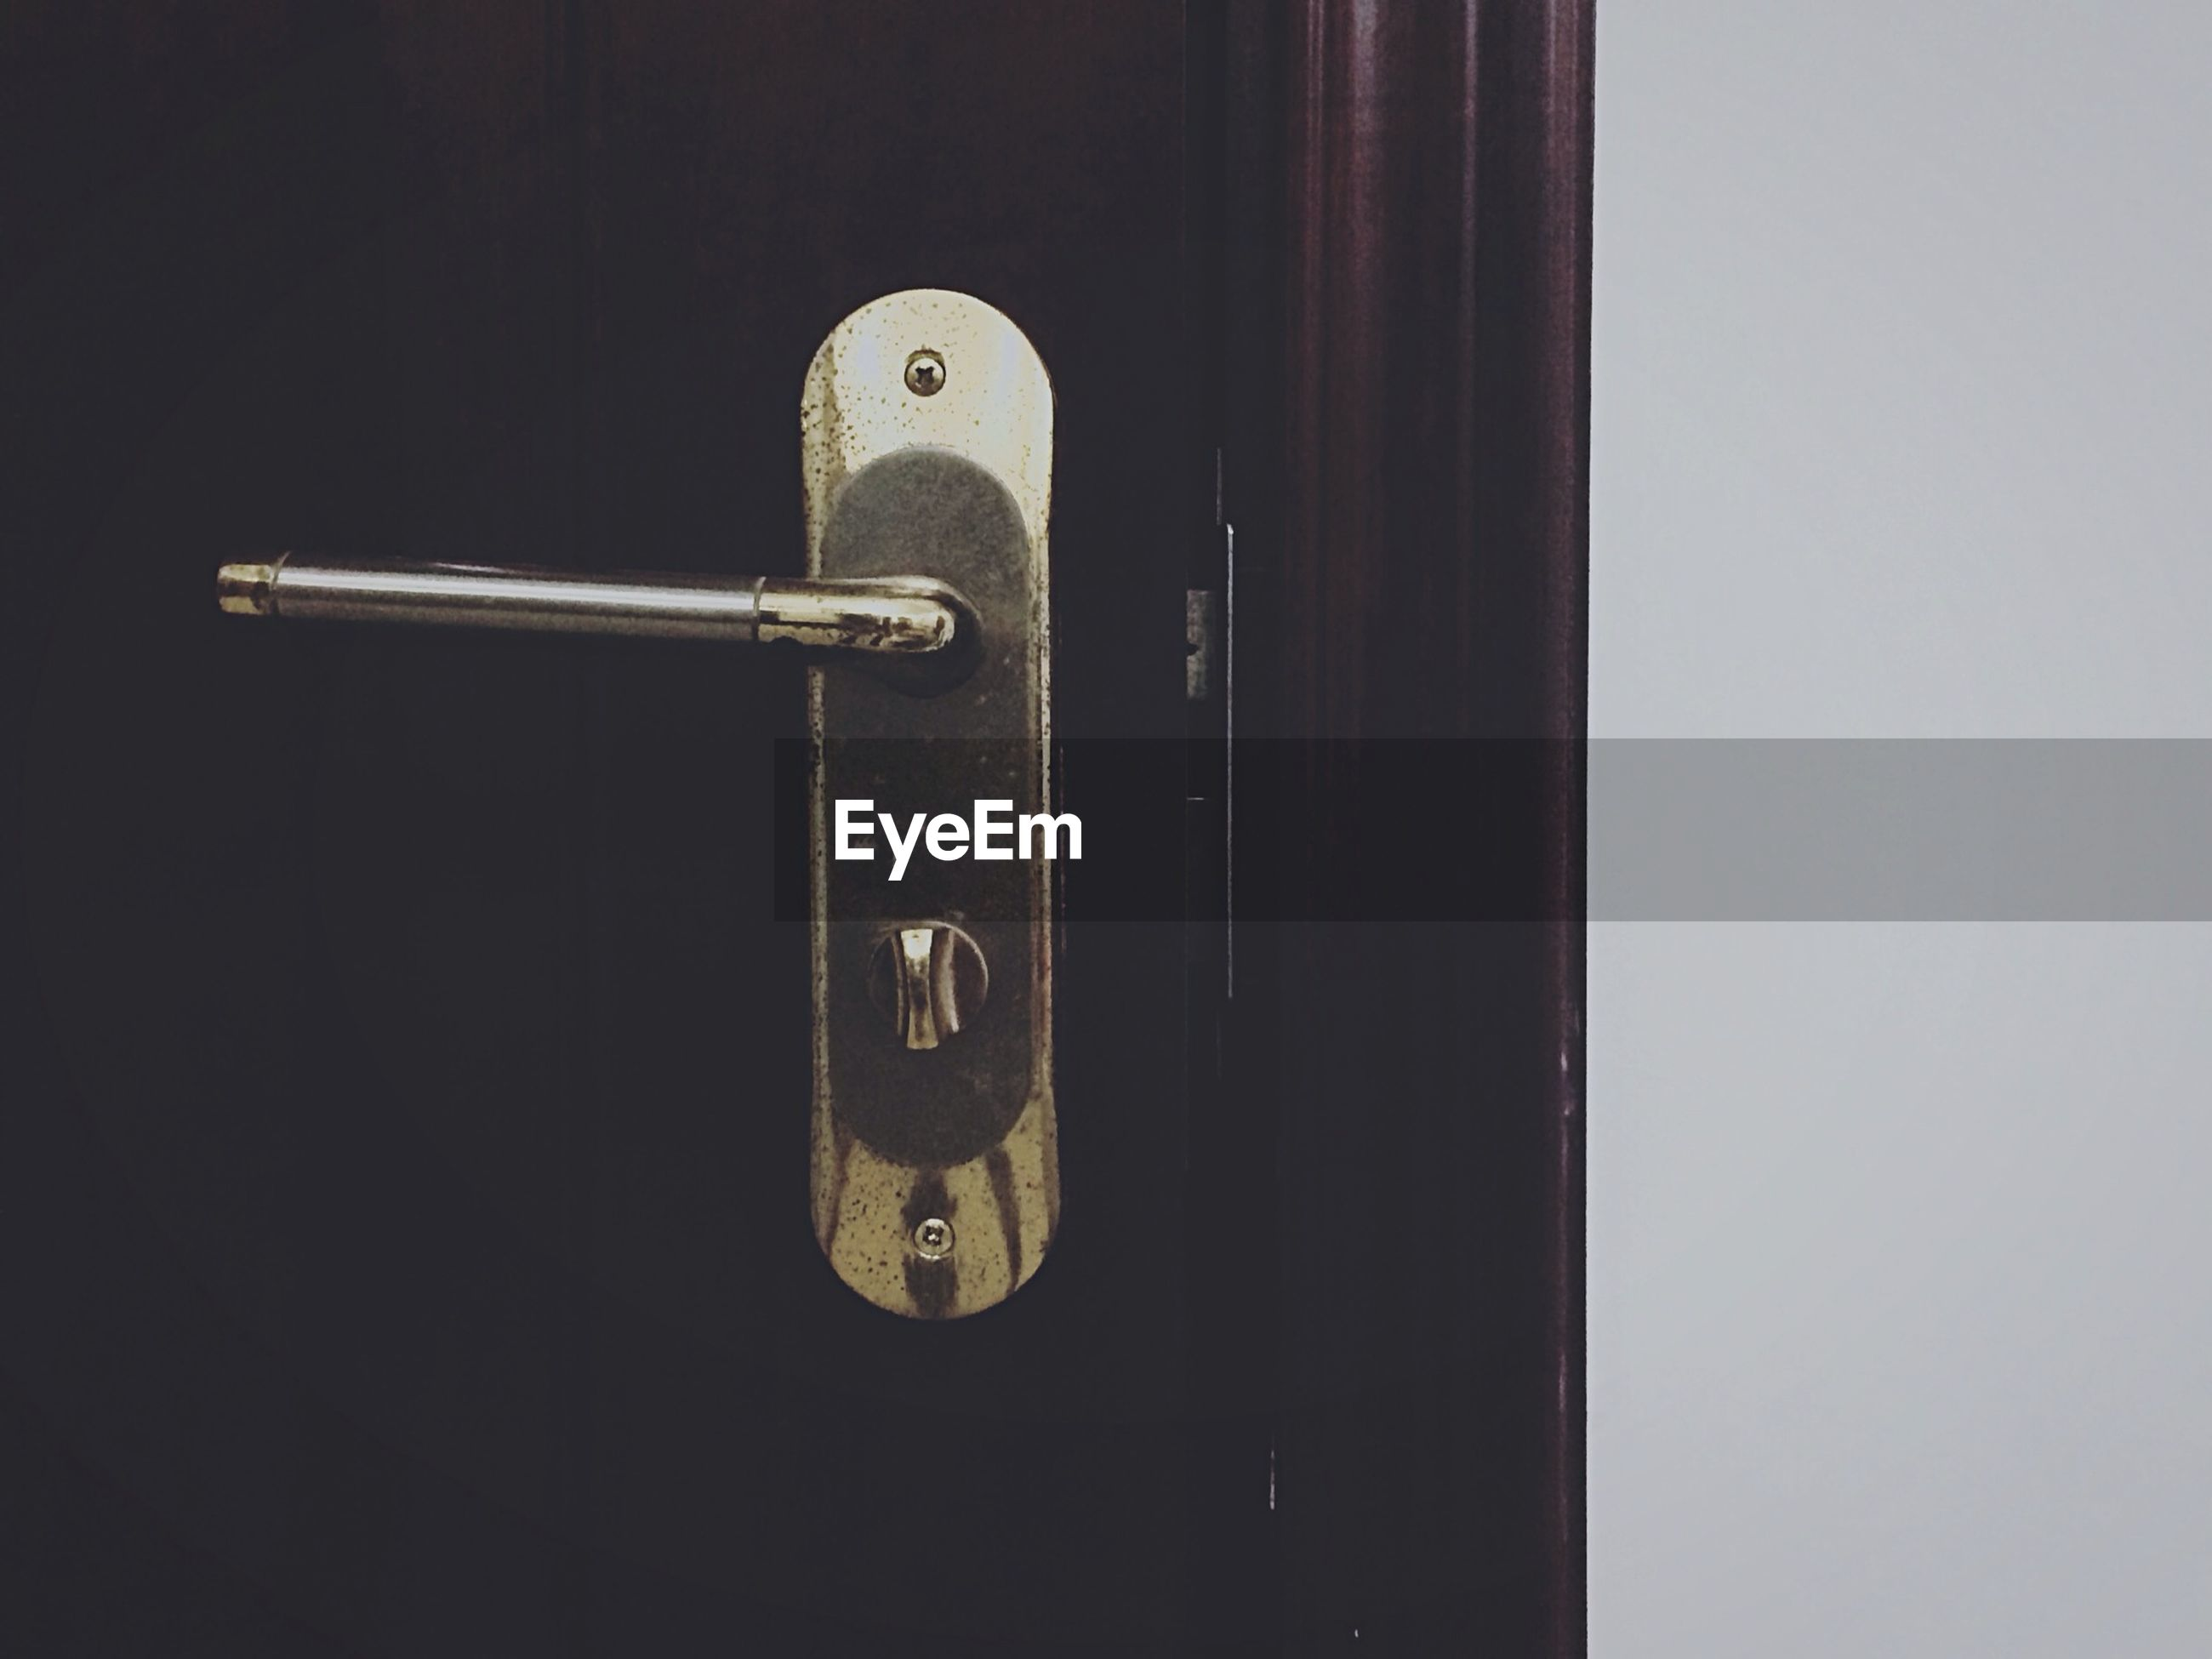 indoors, close-up, metal, door, wall - building feature, technology, old-fashioned, connection, security, handle, safety, single object, metallic, electricity, retro styled, number, no people, old, protection, closed